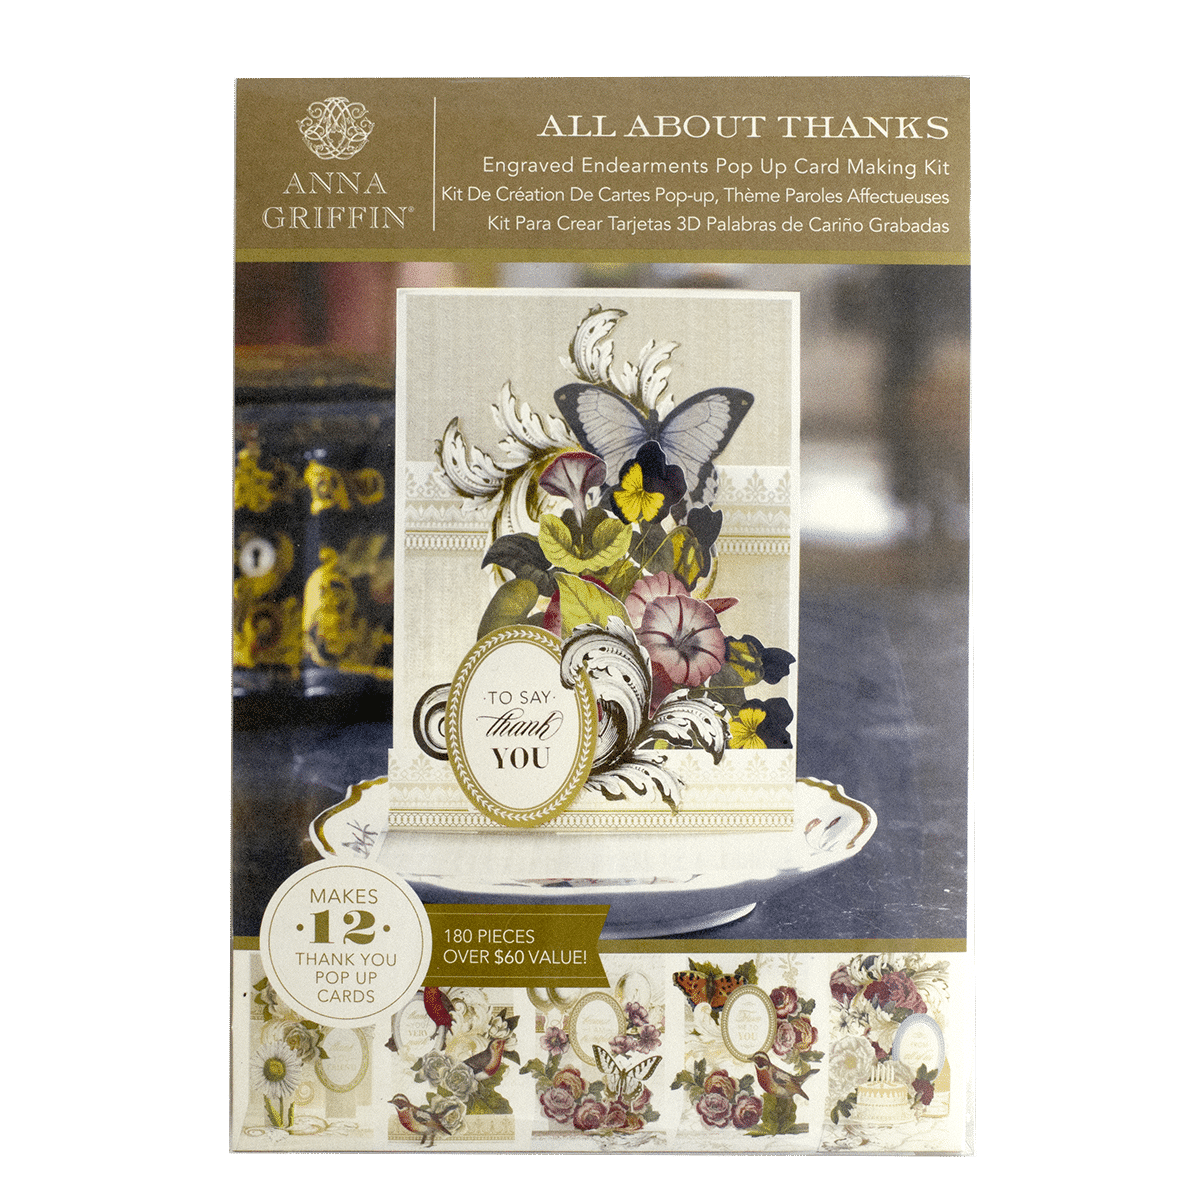 Glorious greetings cardmaking kit anna griffin engraved pop up card kit all about thanks m4hsunfo